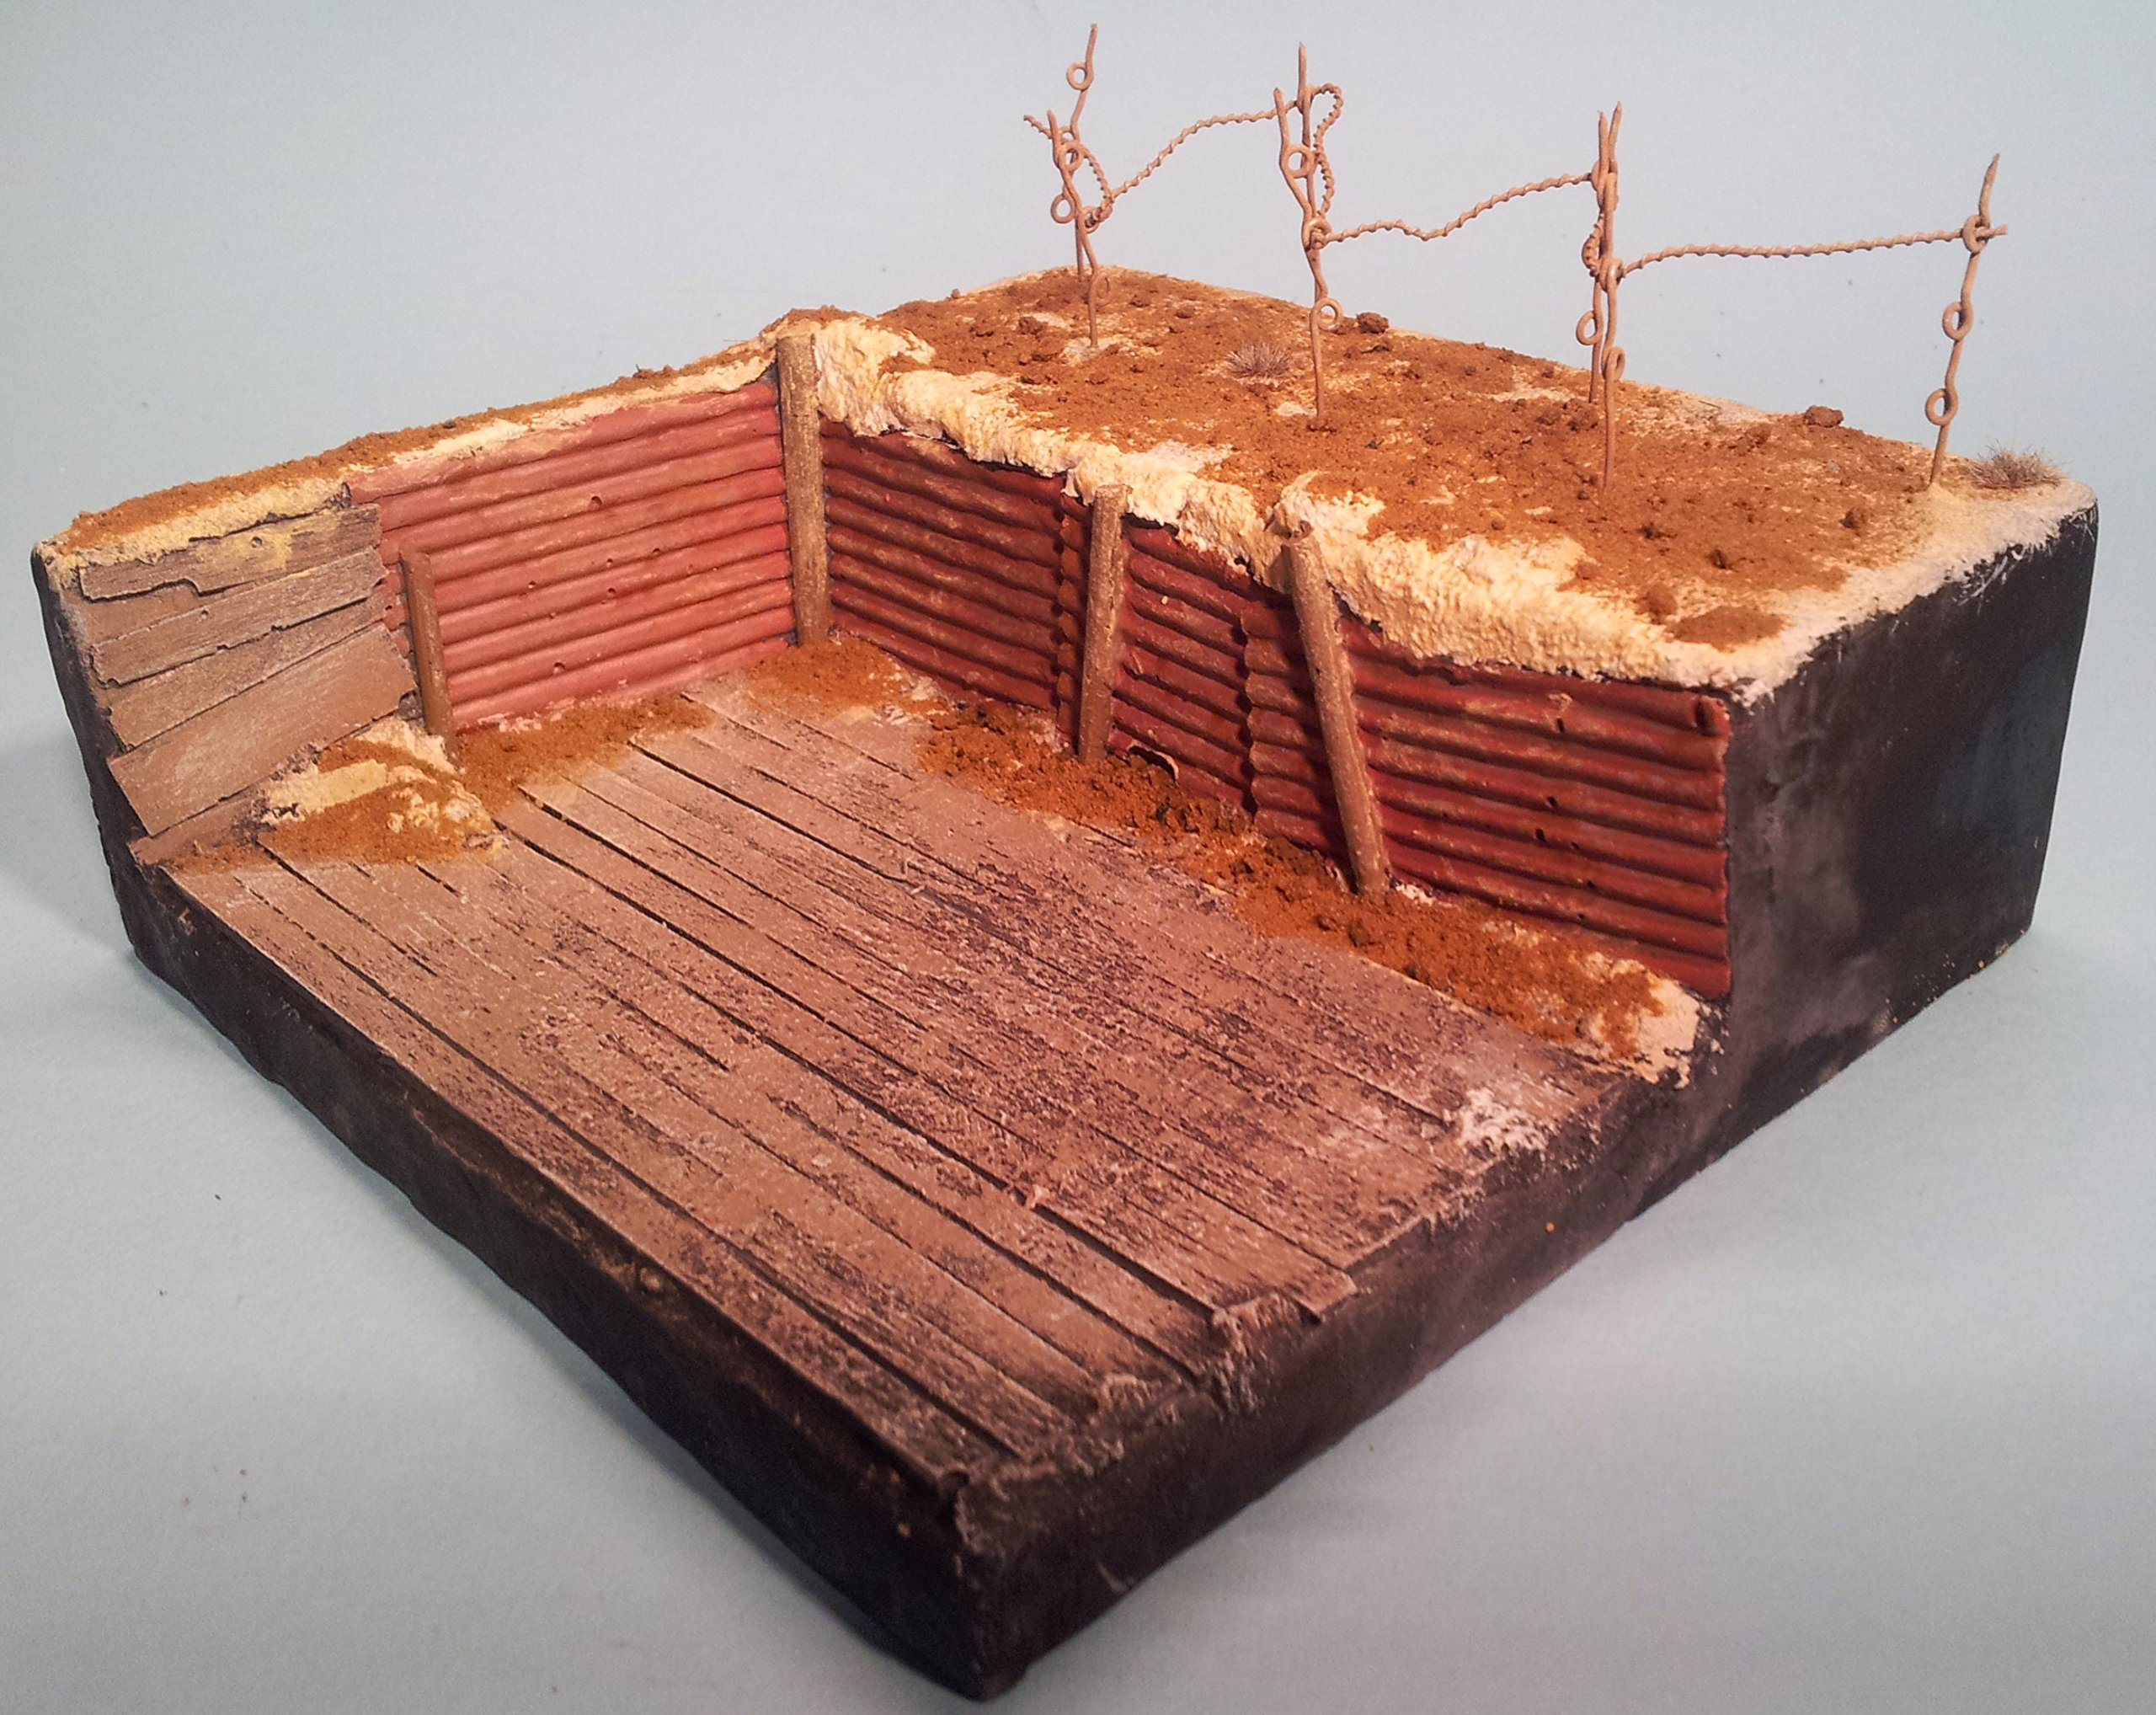 1/35 Scale Trench Vignette base - approx 150mm x 150mm